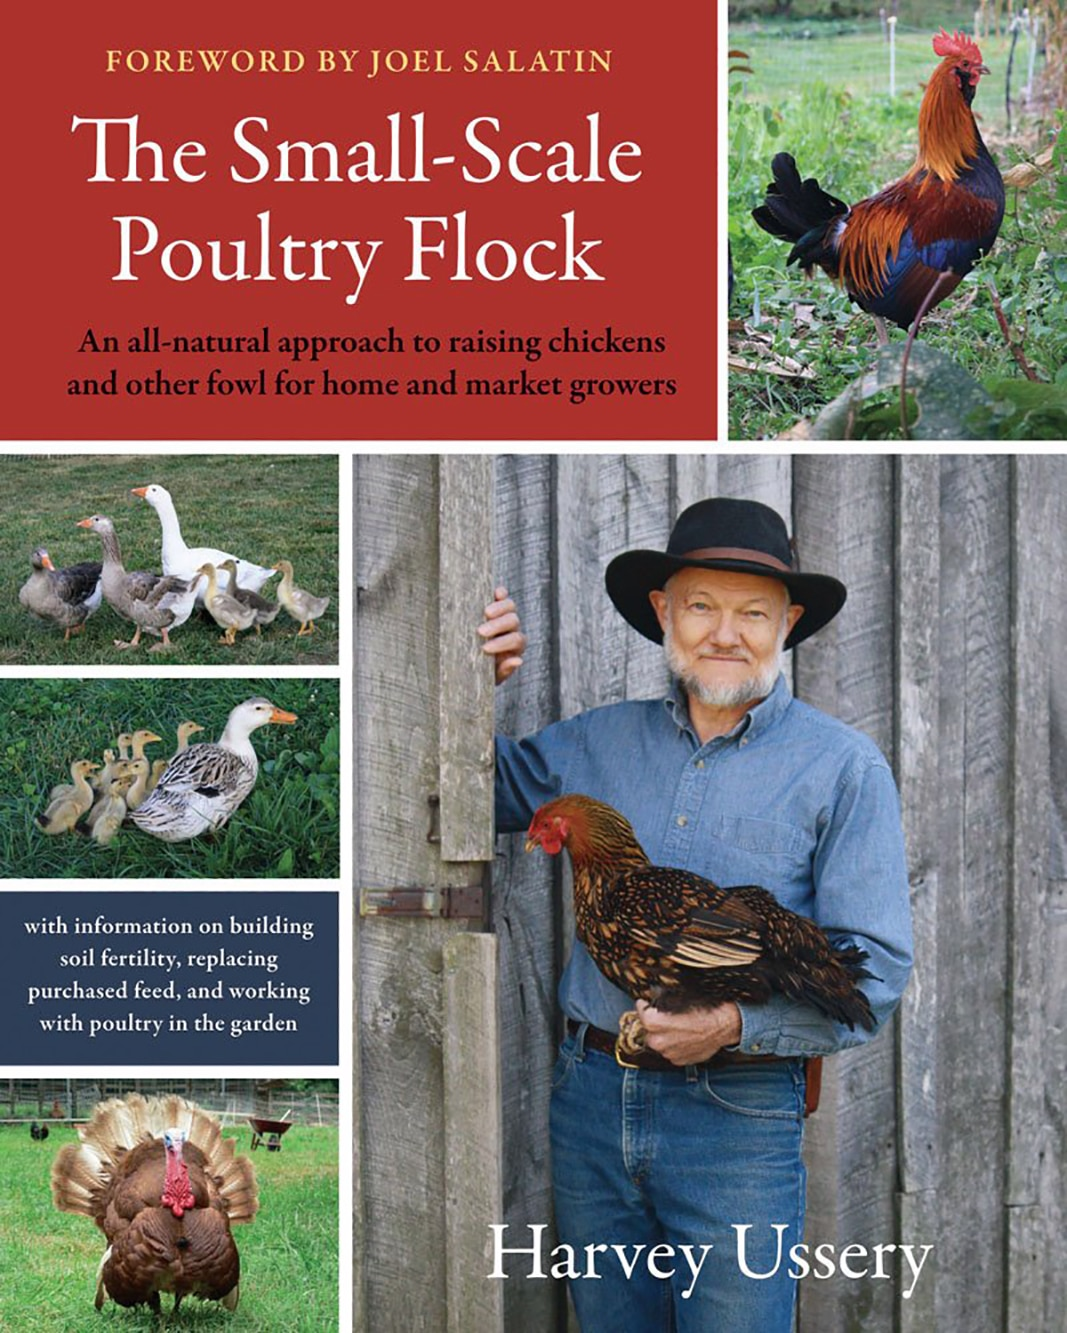 The Small-Scale Poultry Flock review